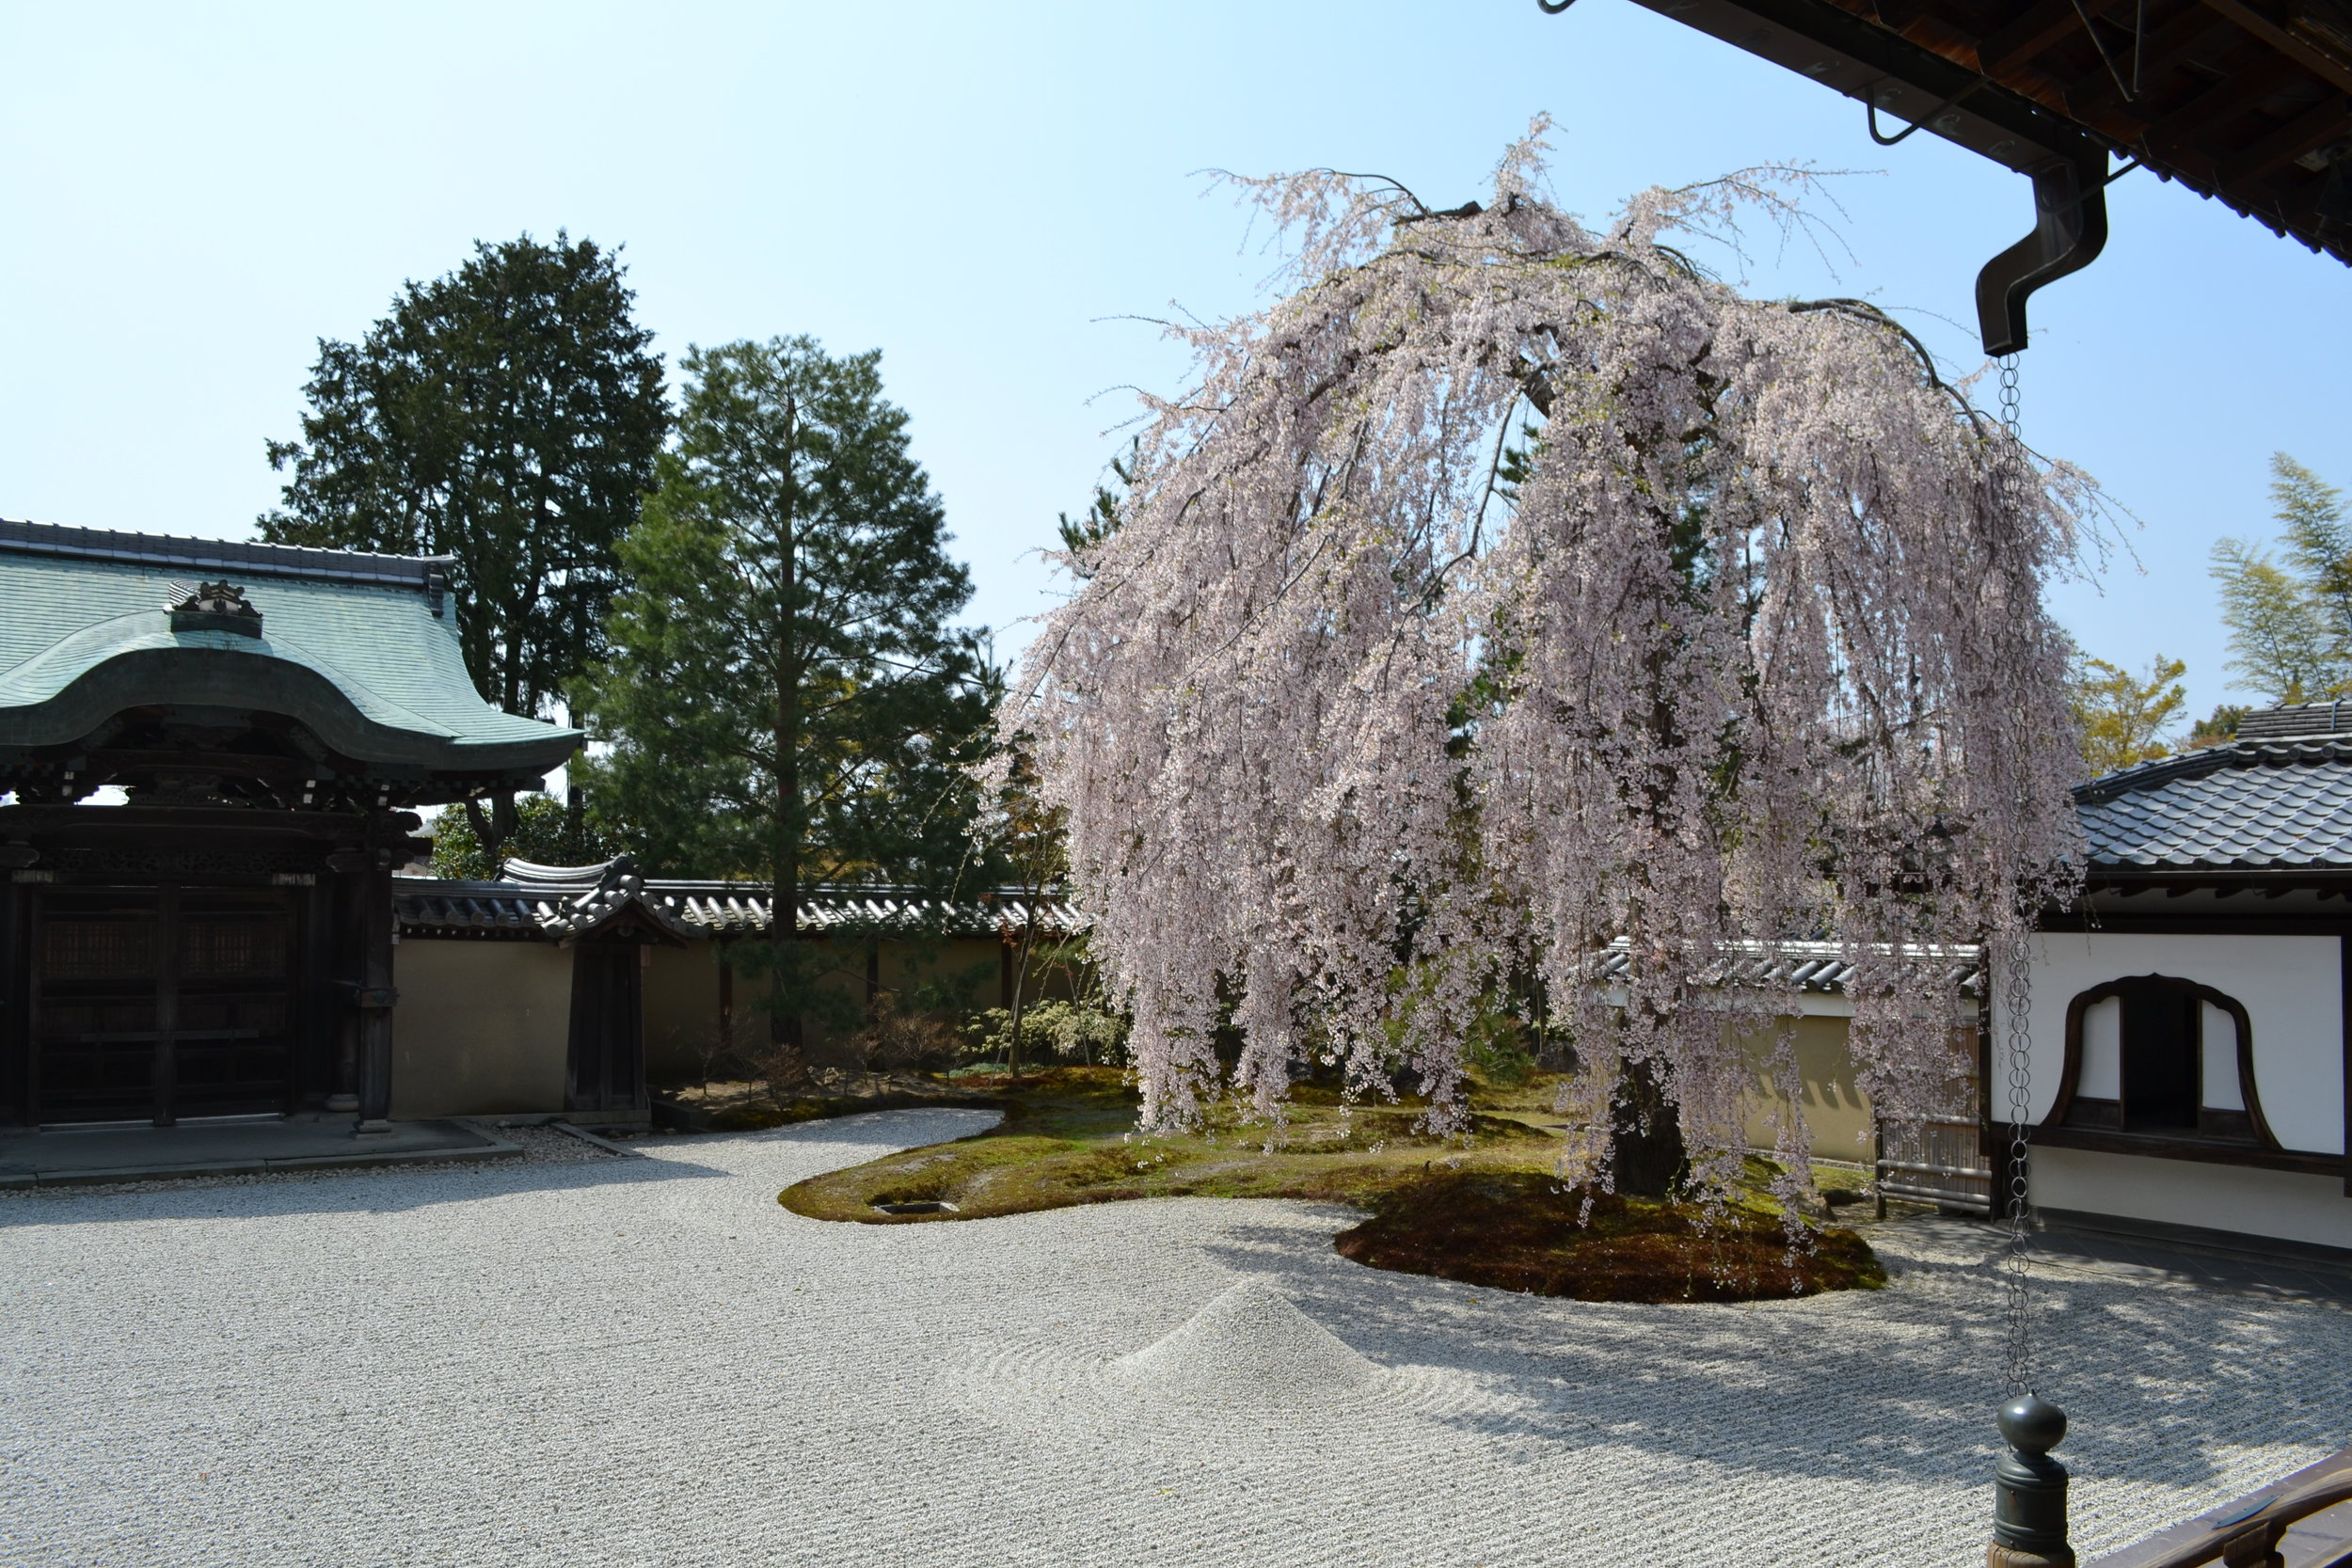 Kodaiji is known for its  shidarezakura  tree, which means weeping cherry blossom tree. These weeping trees are less common to find, so there was a line to take a picture of this tree up close. Located within a zen garden, this tree was a beauty to capture on film.